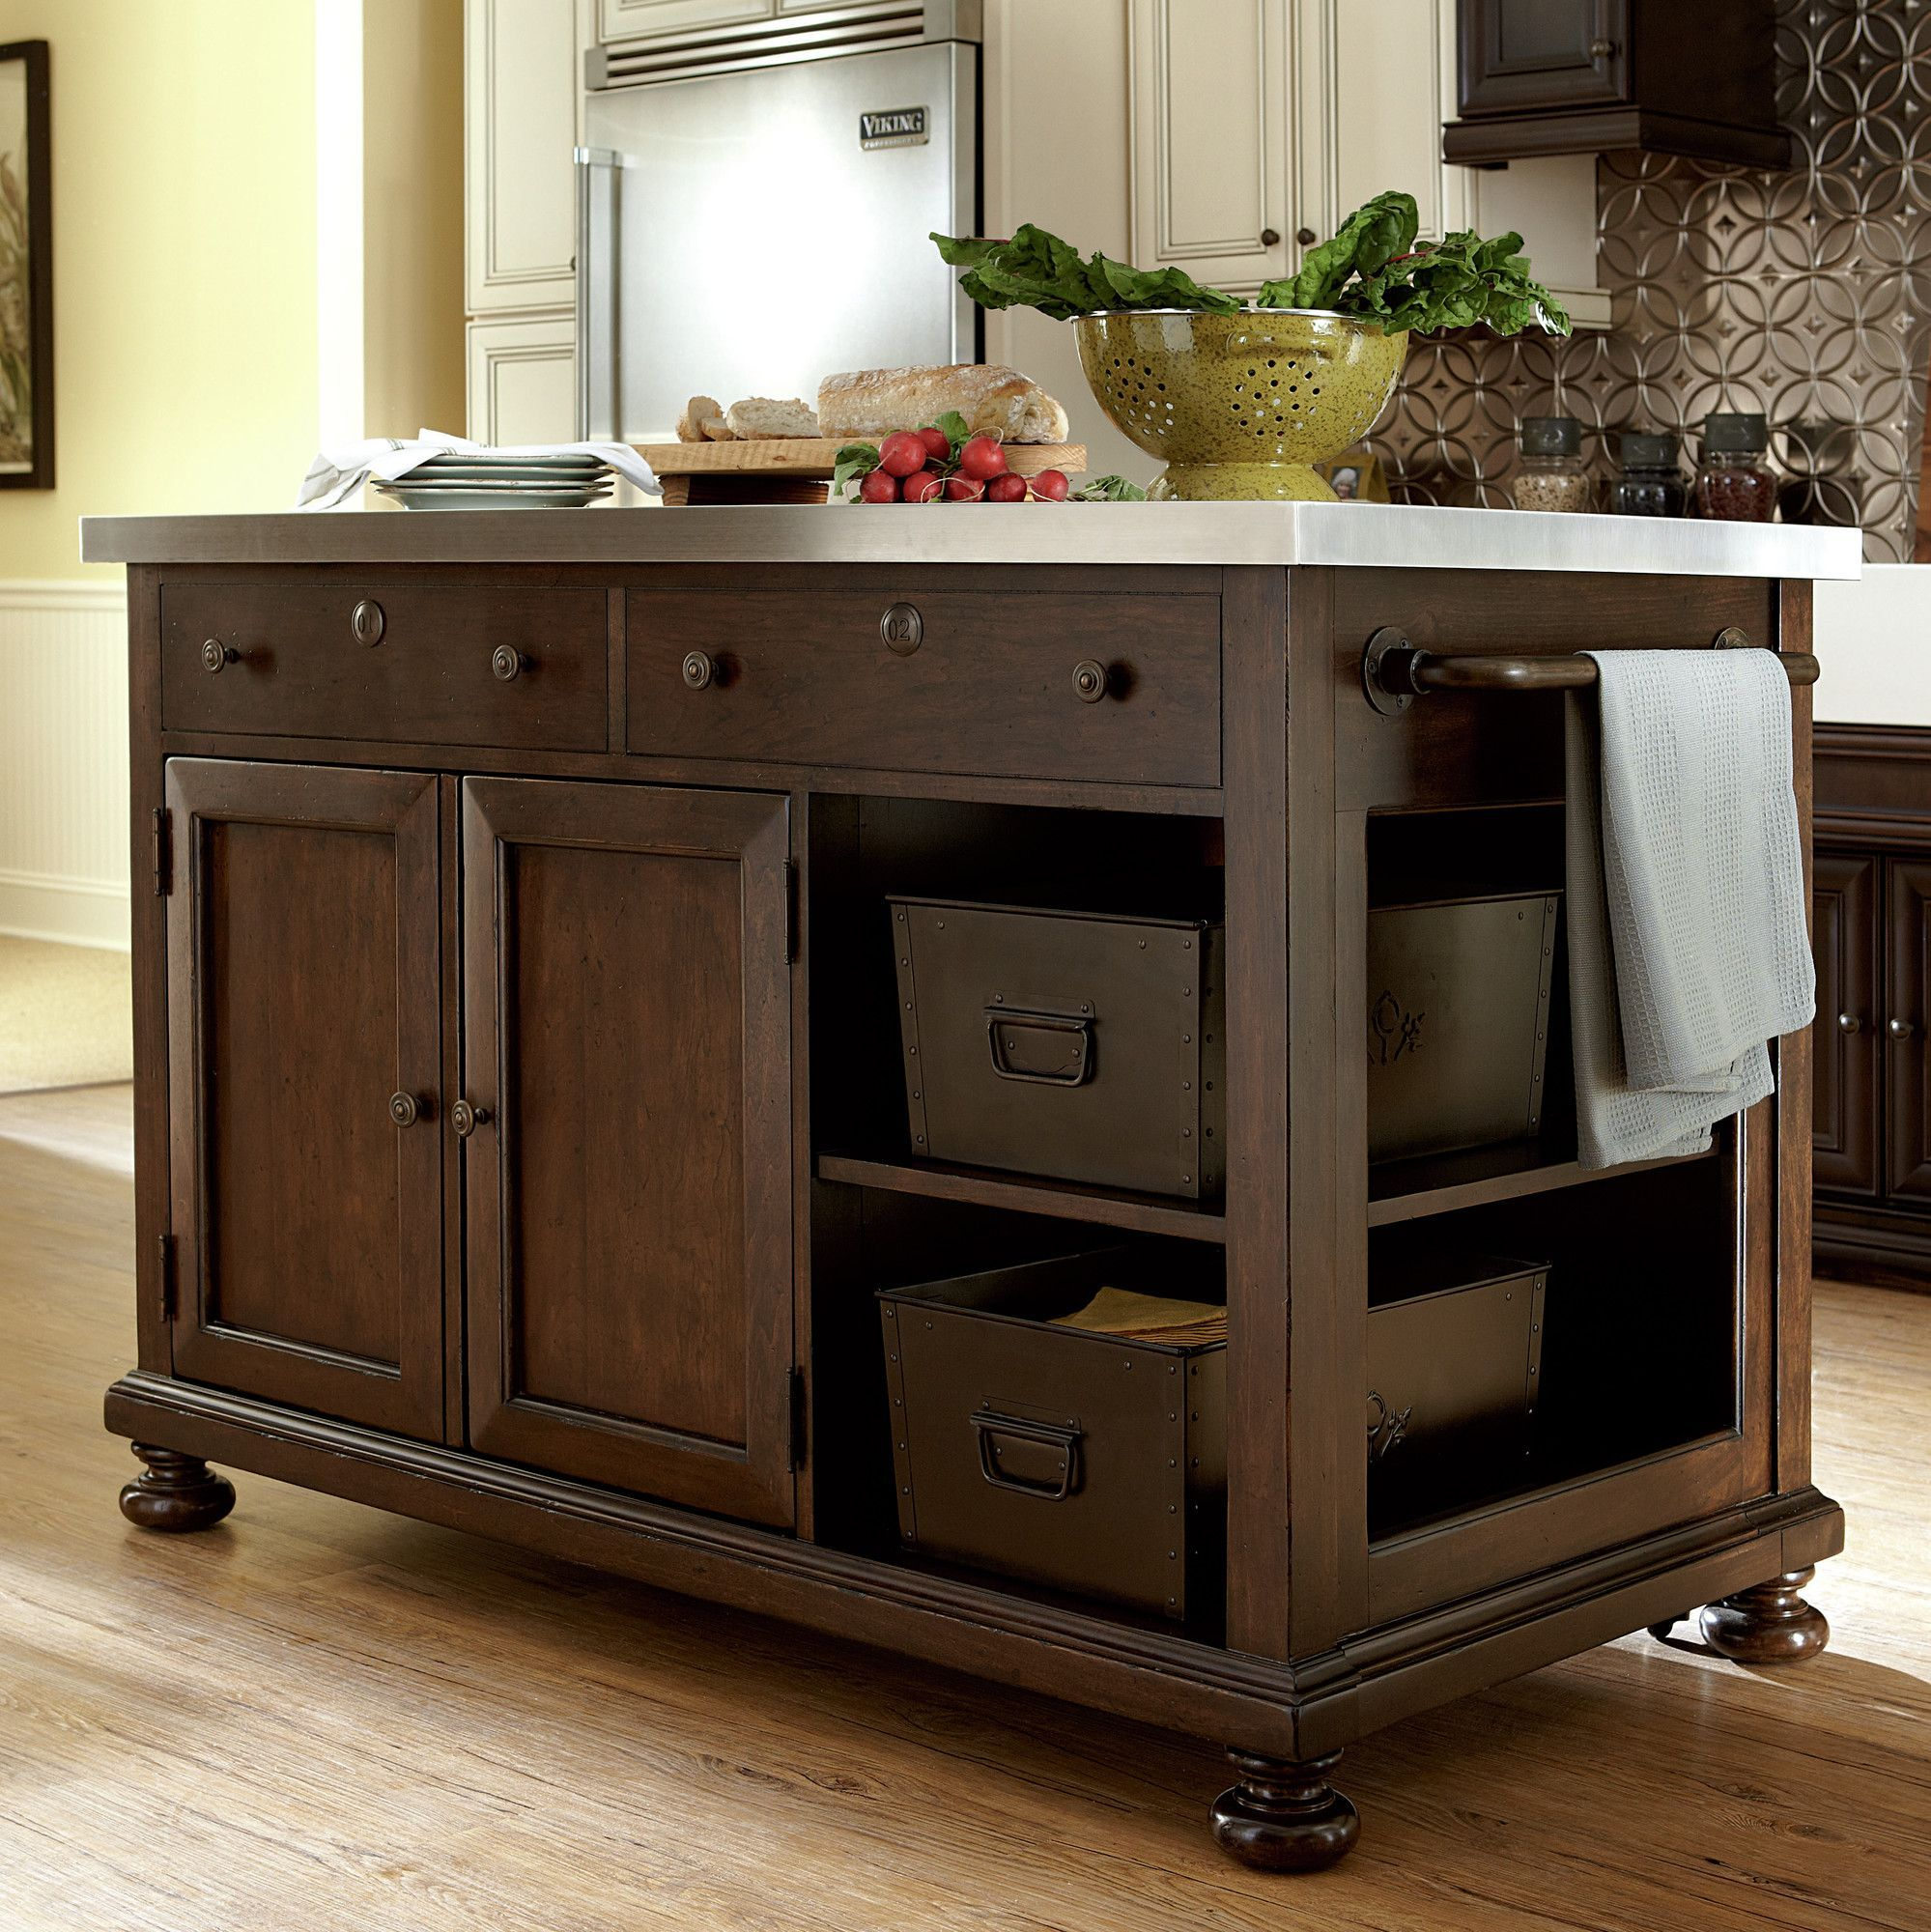 Superieur Paula Deen Home River House Kitchen Island With Stainless Steel Top U0026  Reviews | Wayfair.ca